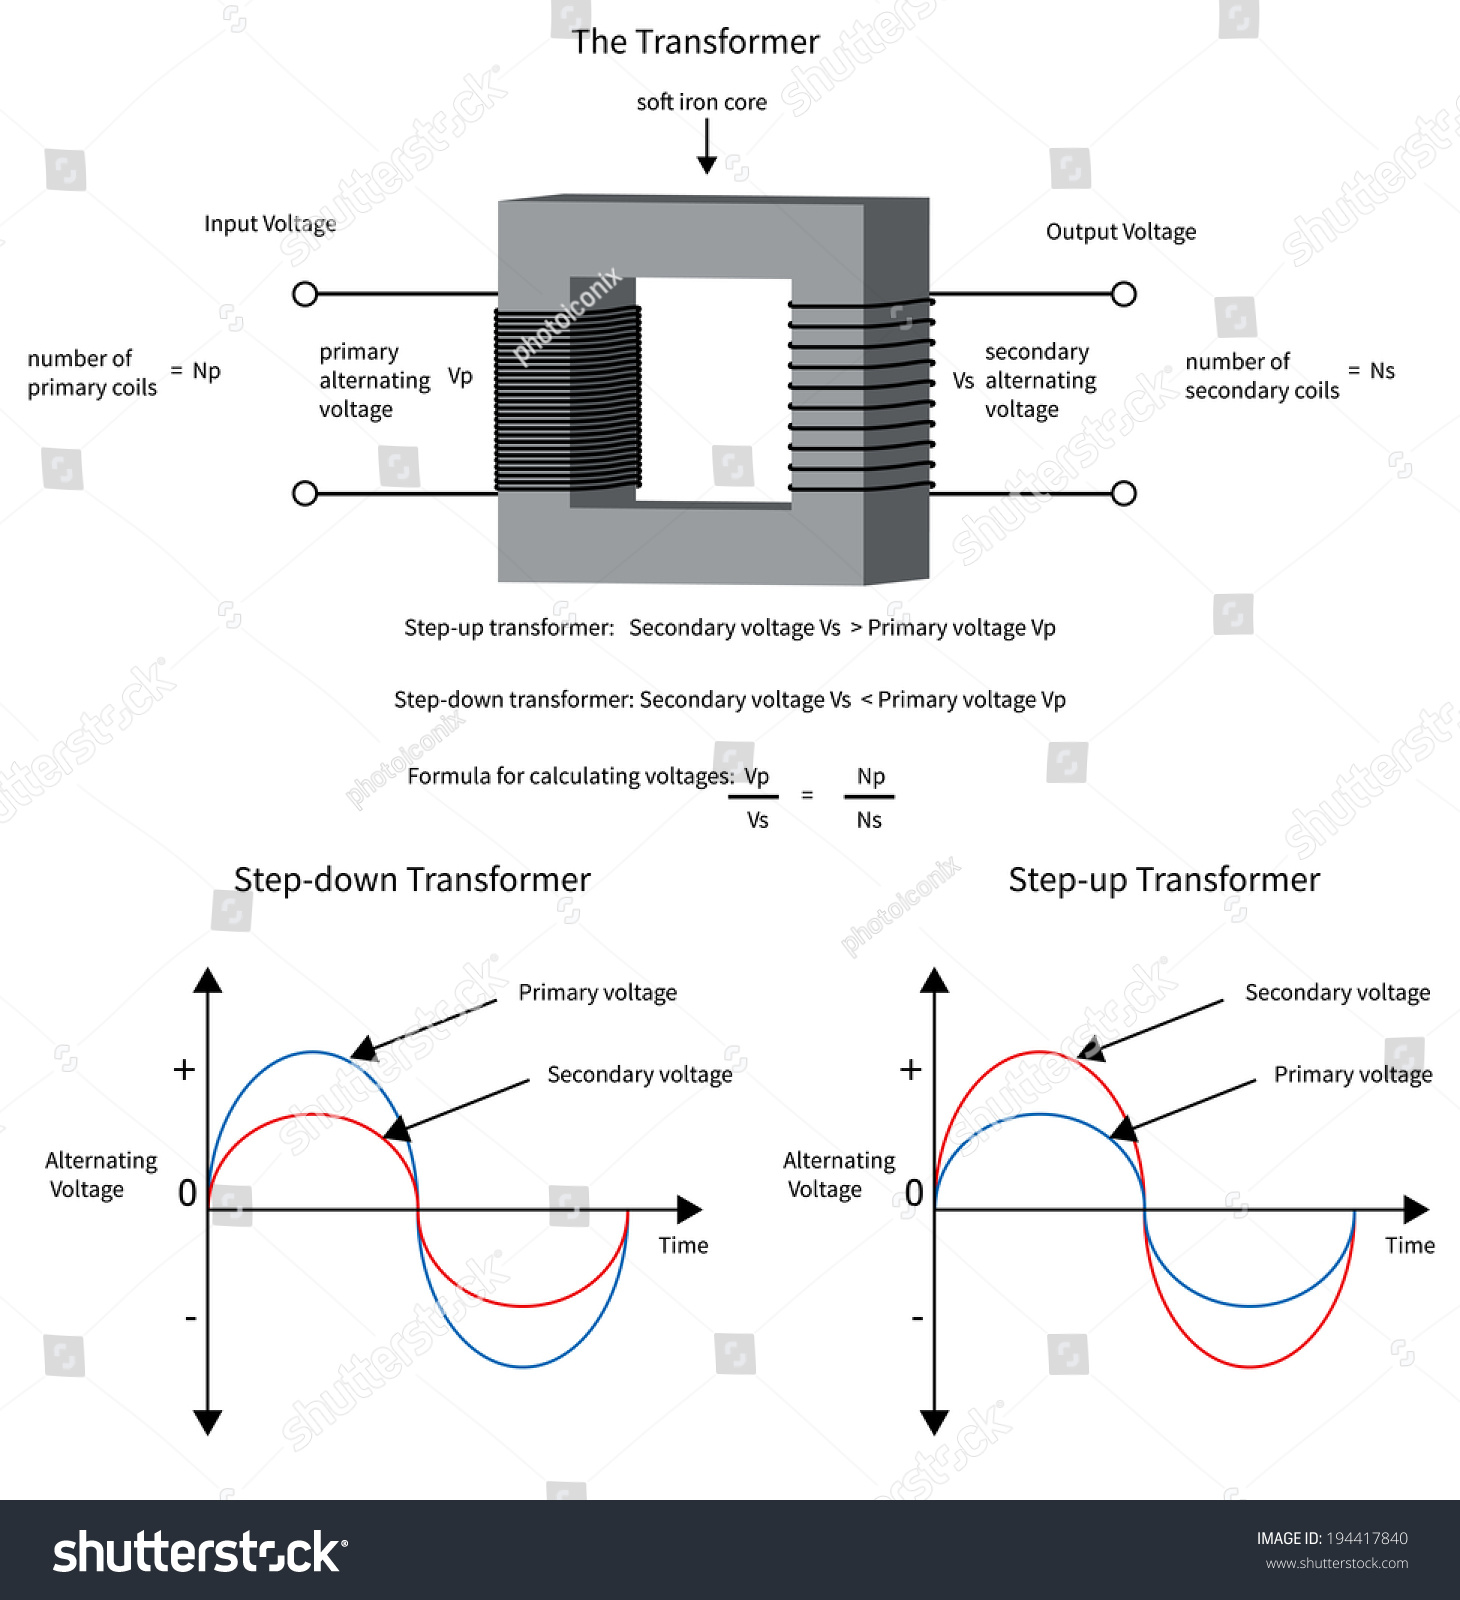 Royalty Free Stock Illustration Of Diagram Show How Electrical Alternating Current To A Transformer Changes Voltage And